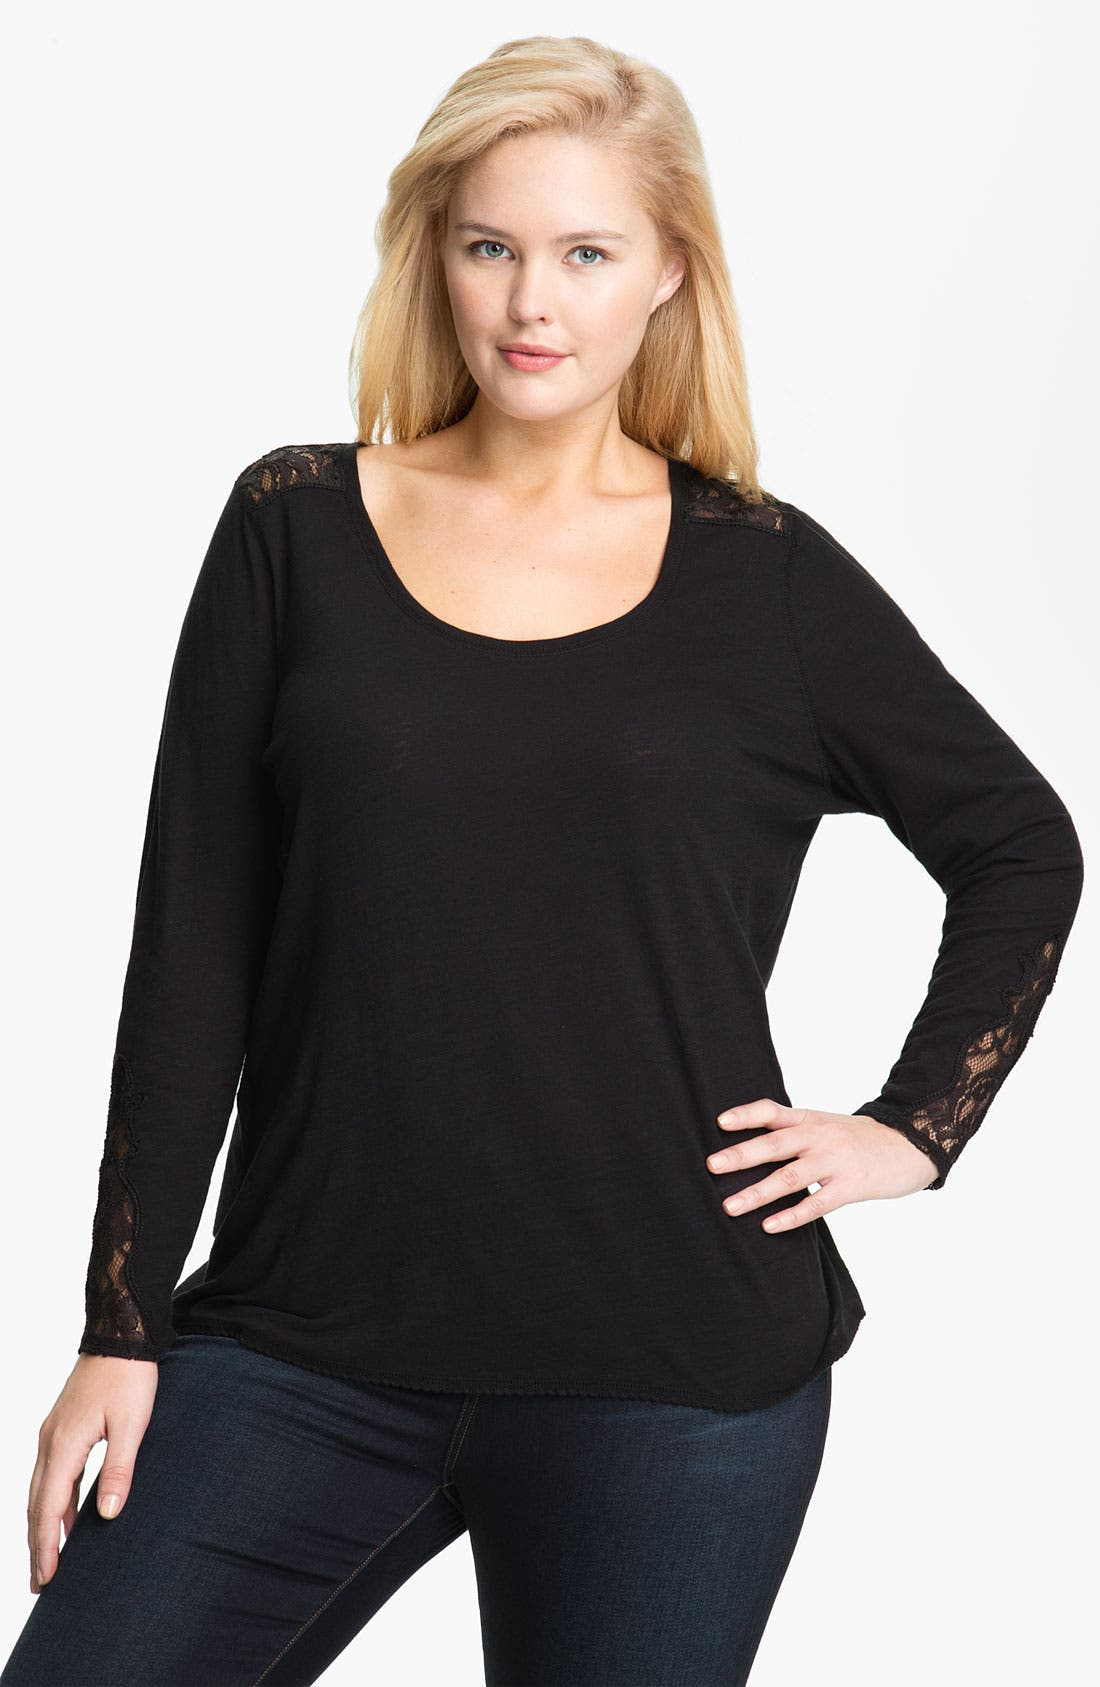 Alternate Image 1 Selected - Lucky Brand Lace Inset Tee (Plus)